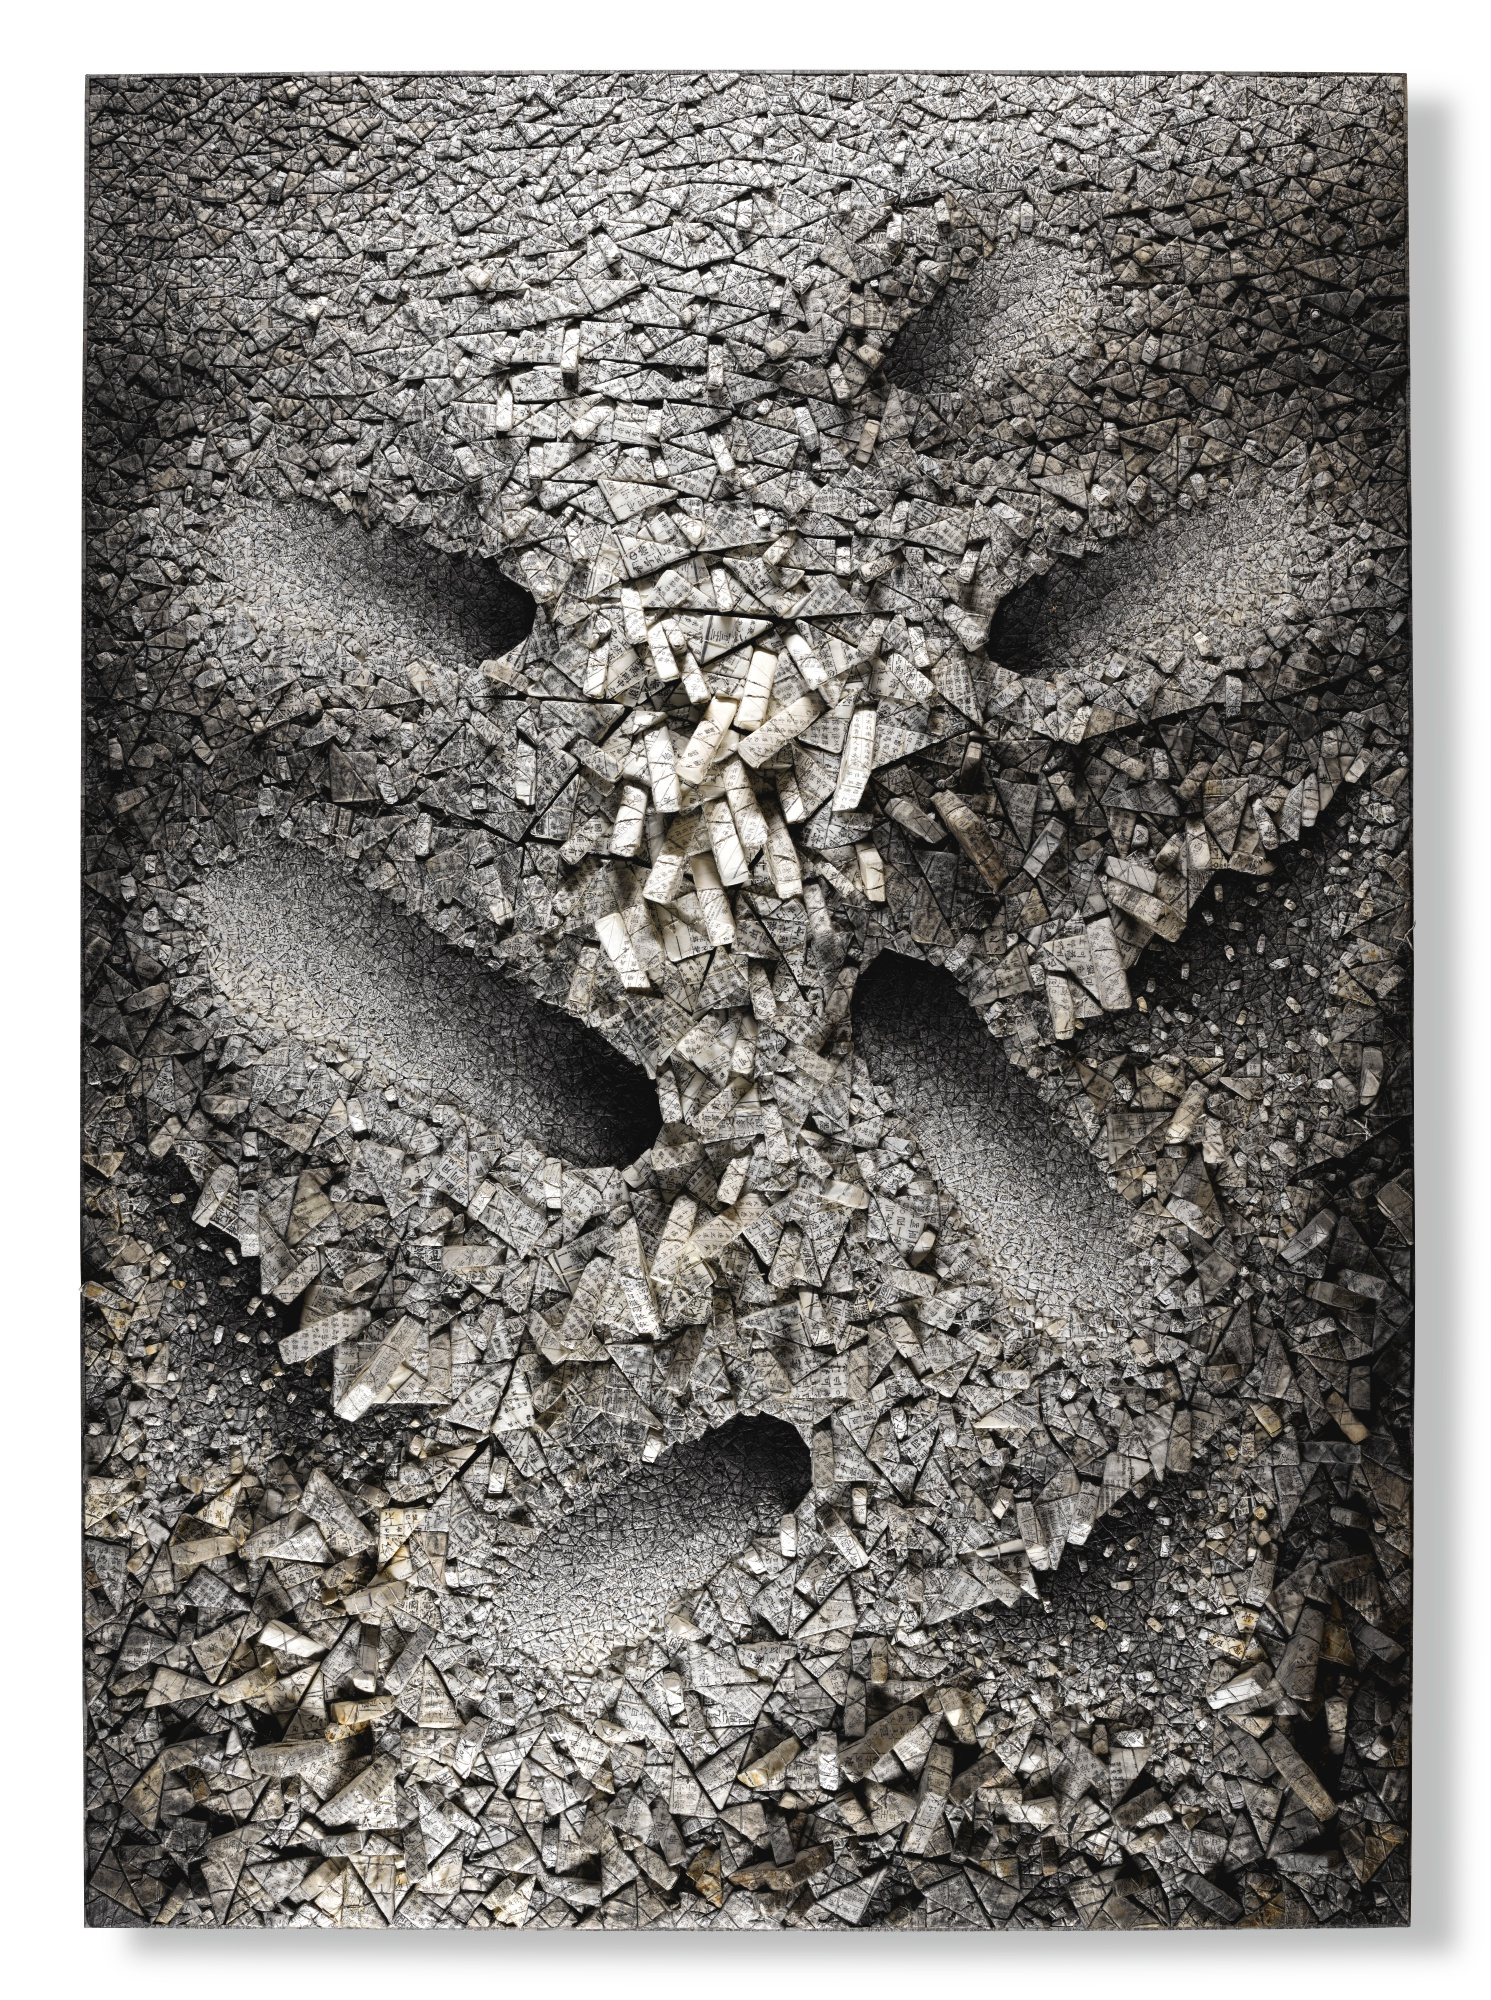 Chun Kwang Young-Aggregation 06-My021-2006